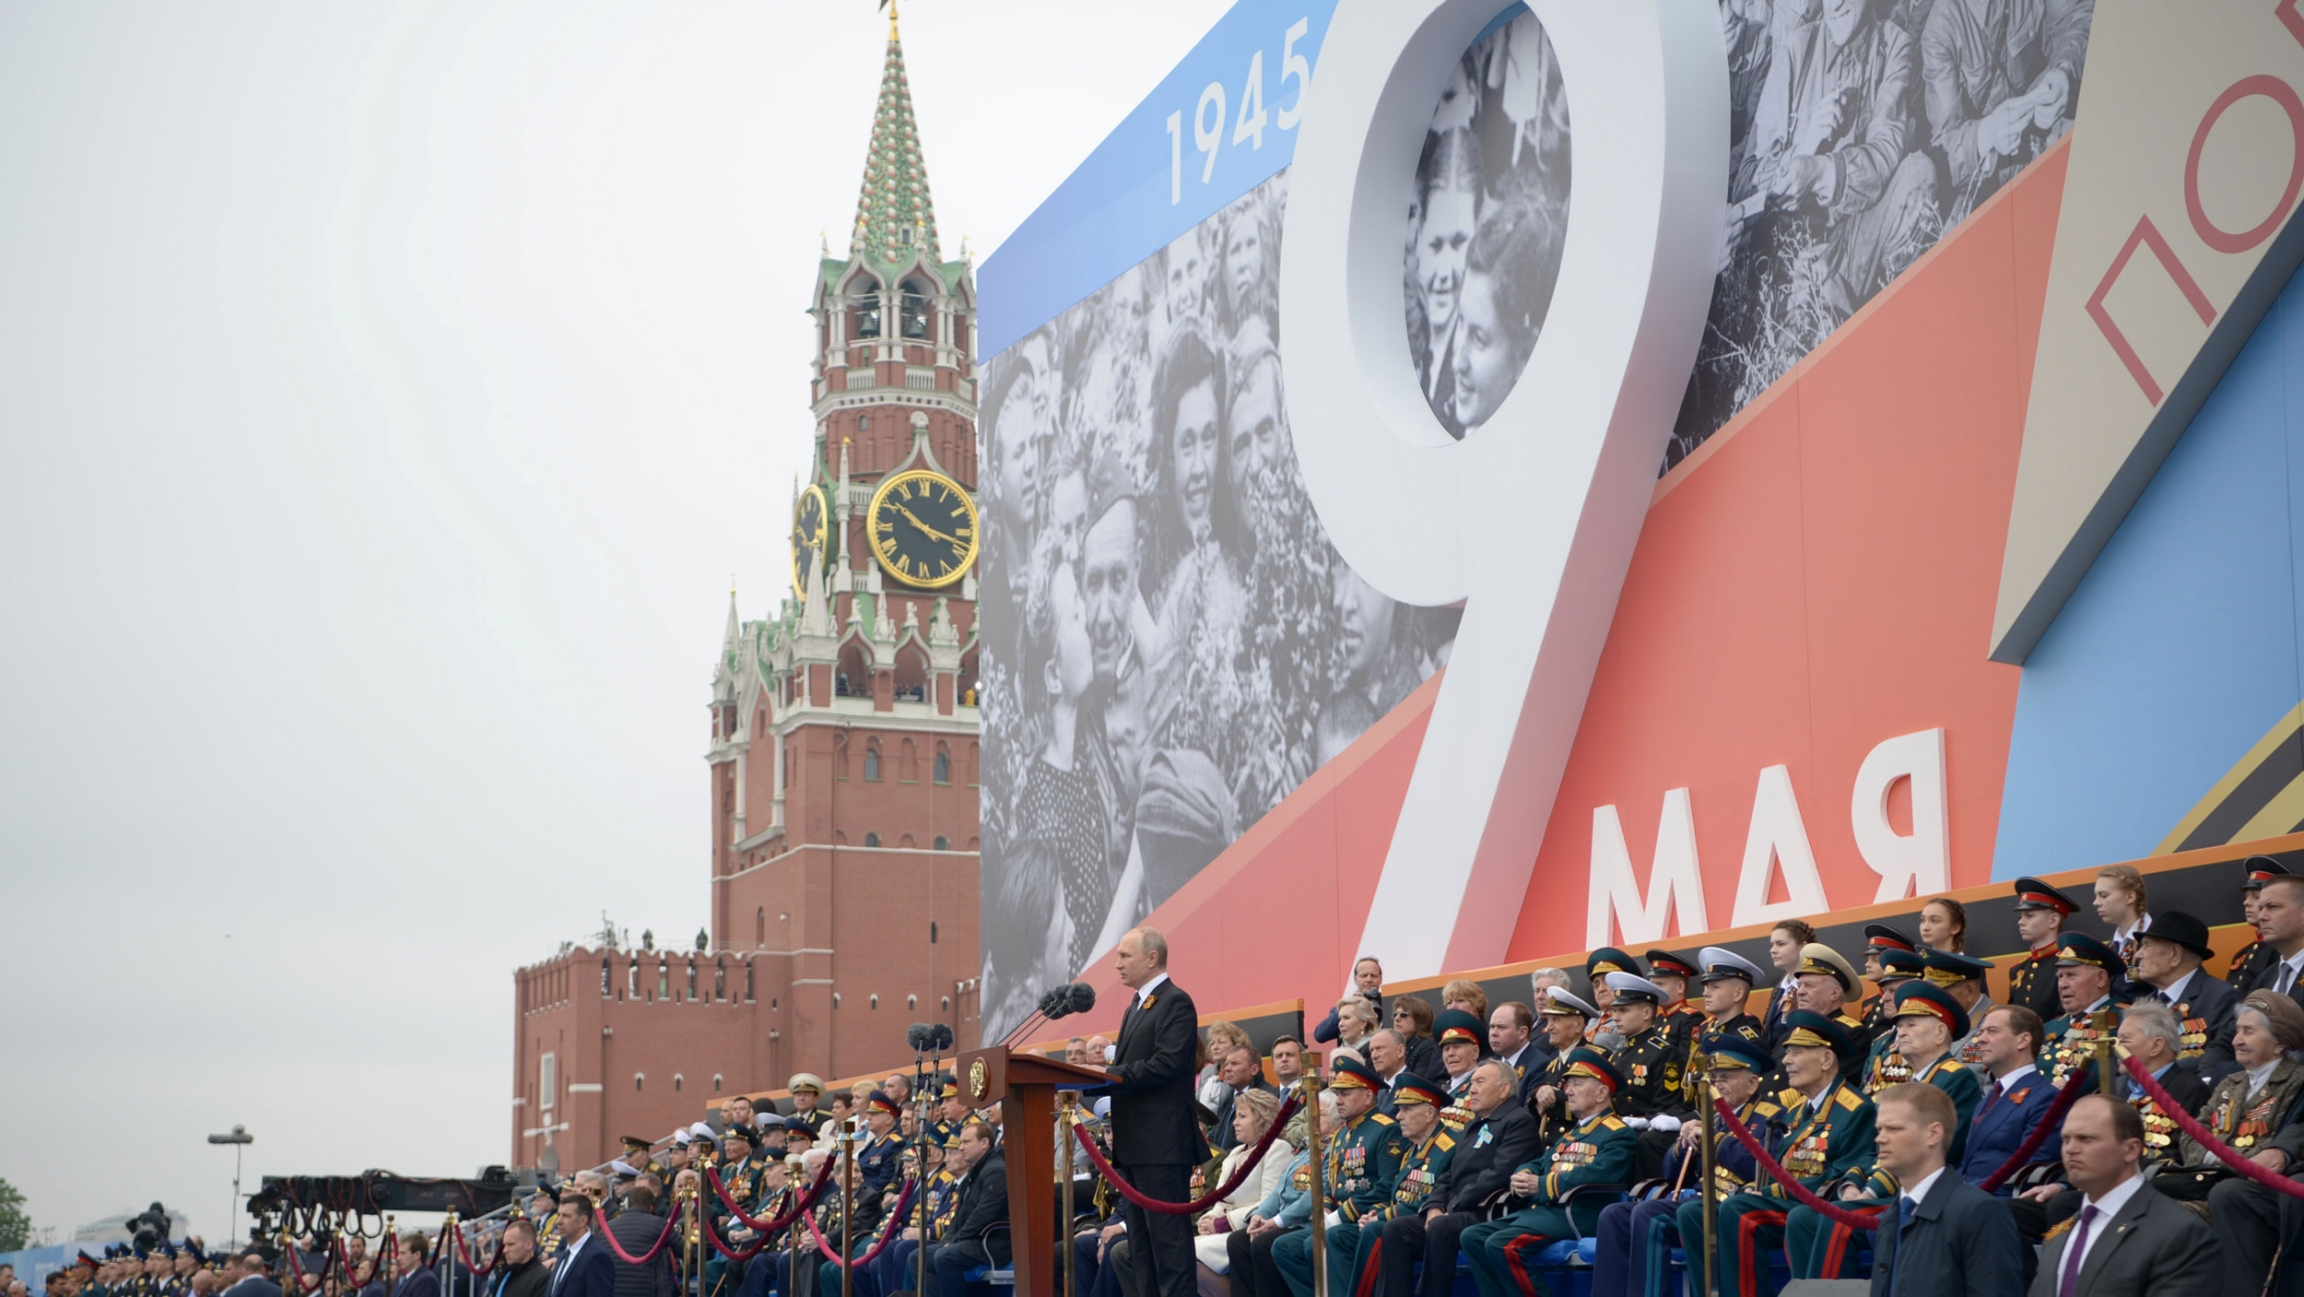 Putin stands at a podium in front of a crowd and signage for May 9